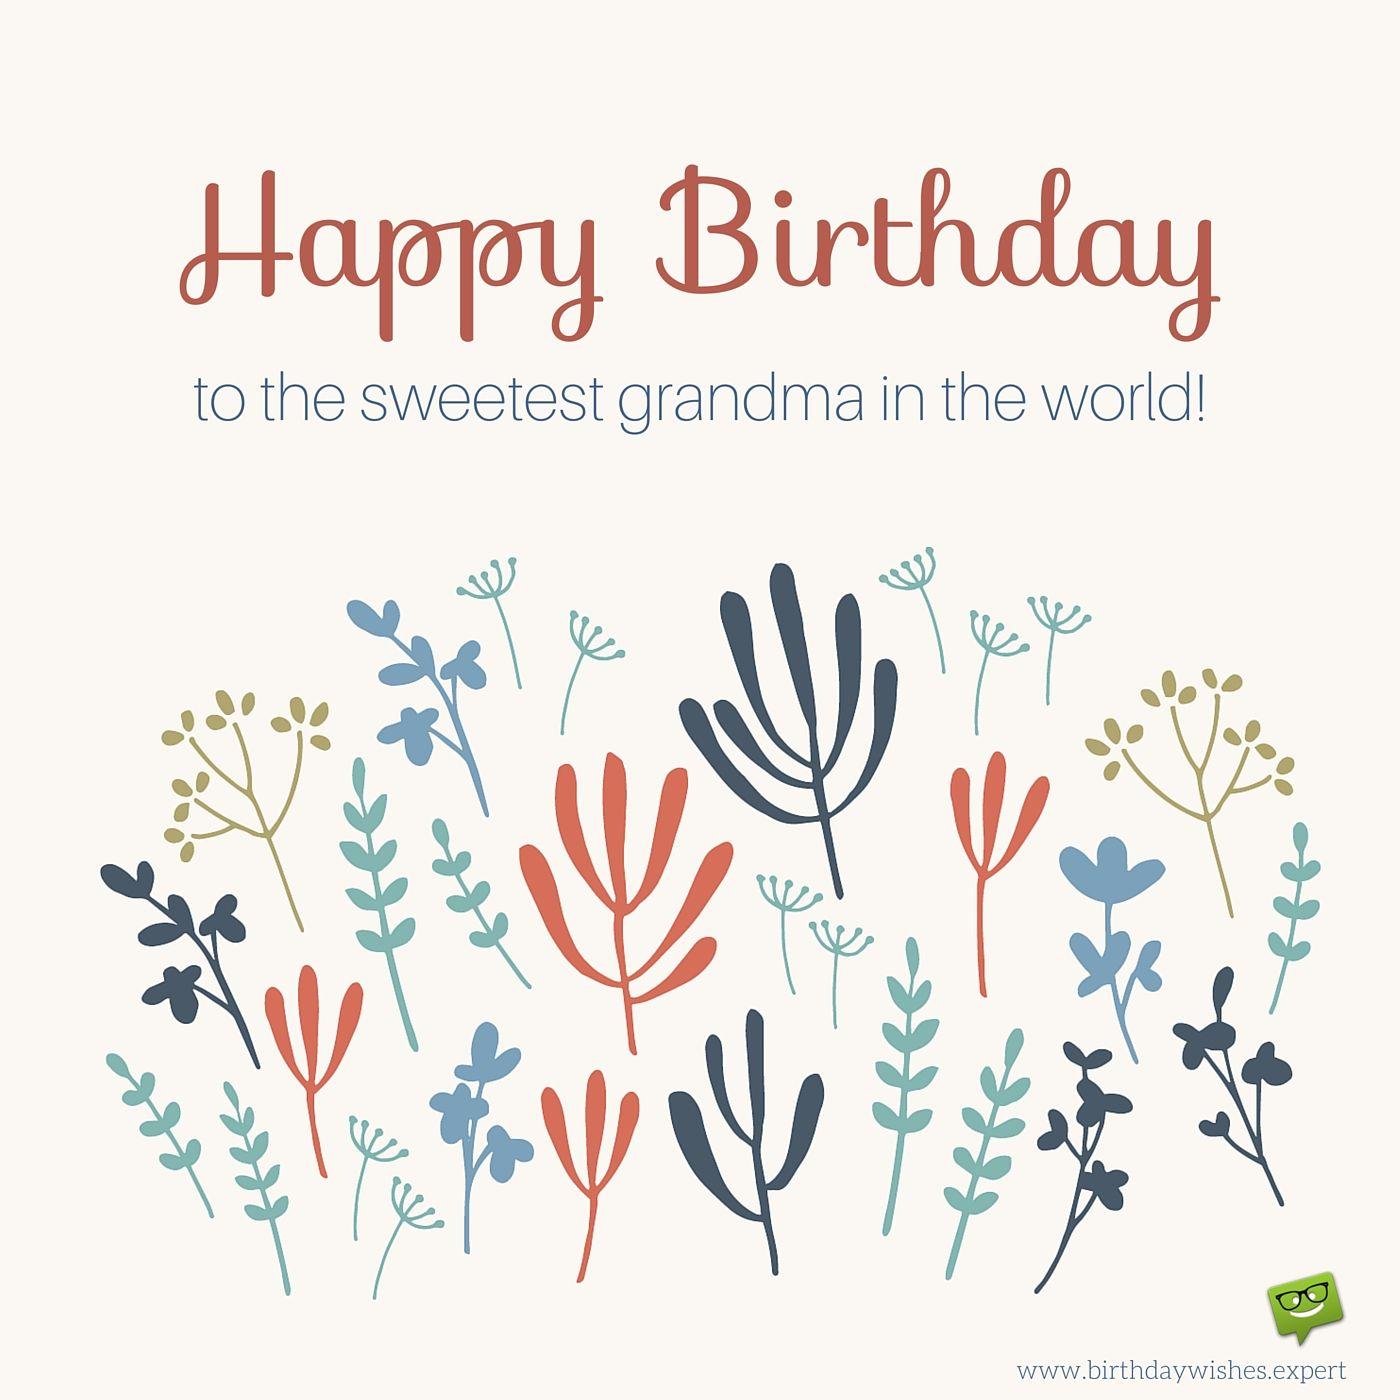 Happy Birthday Grandma, on image of cute leaves and